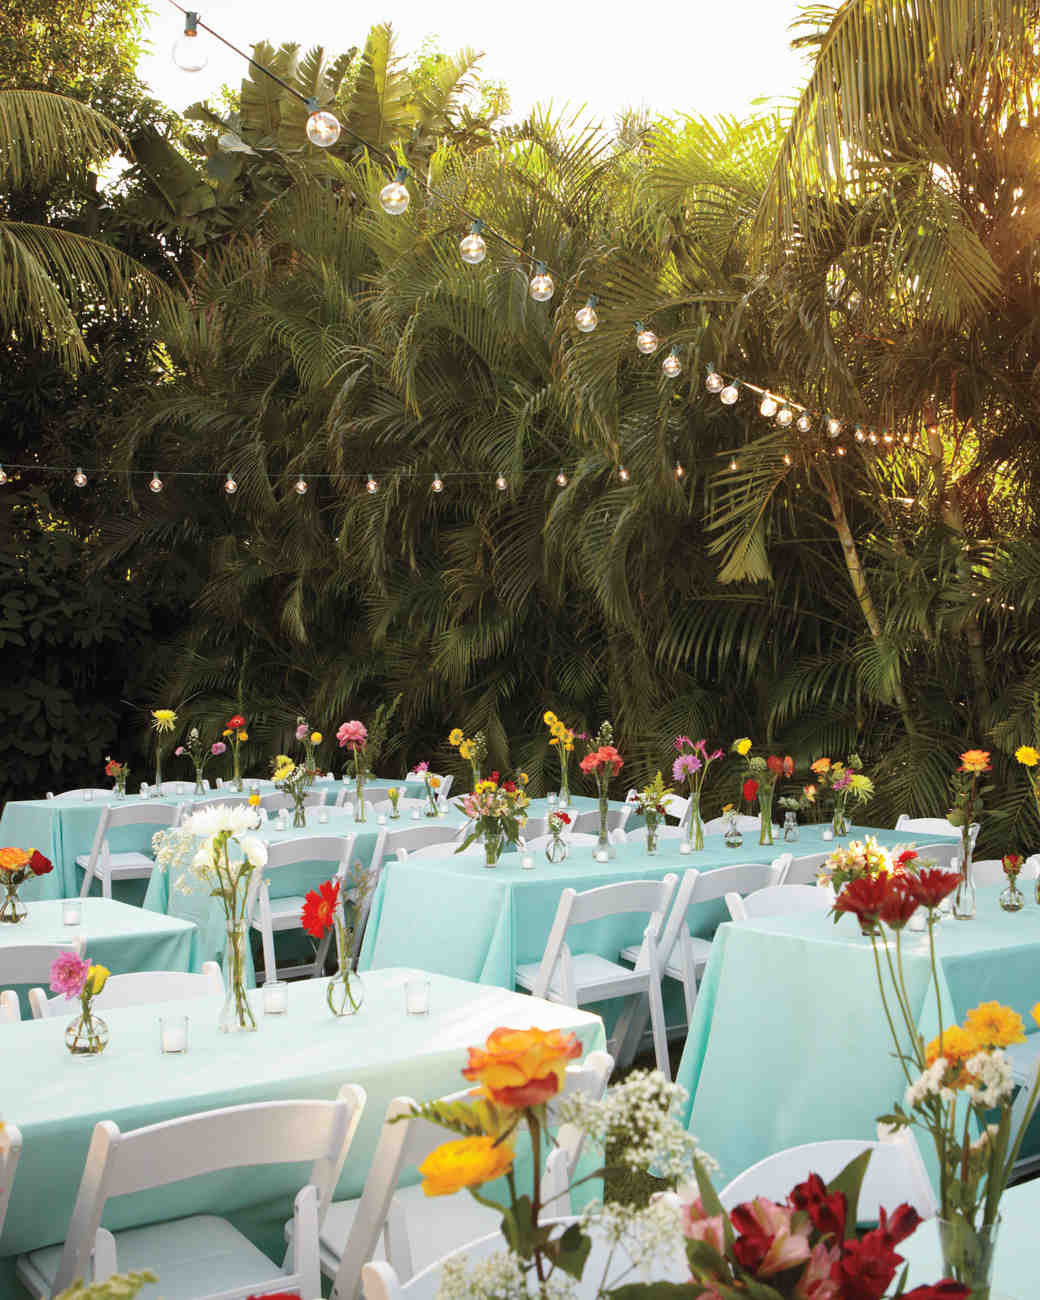 Backyard Wedding Receptions  16 Things You Need to Know to Pull f an Outdoor Wedding